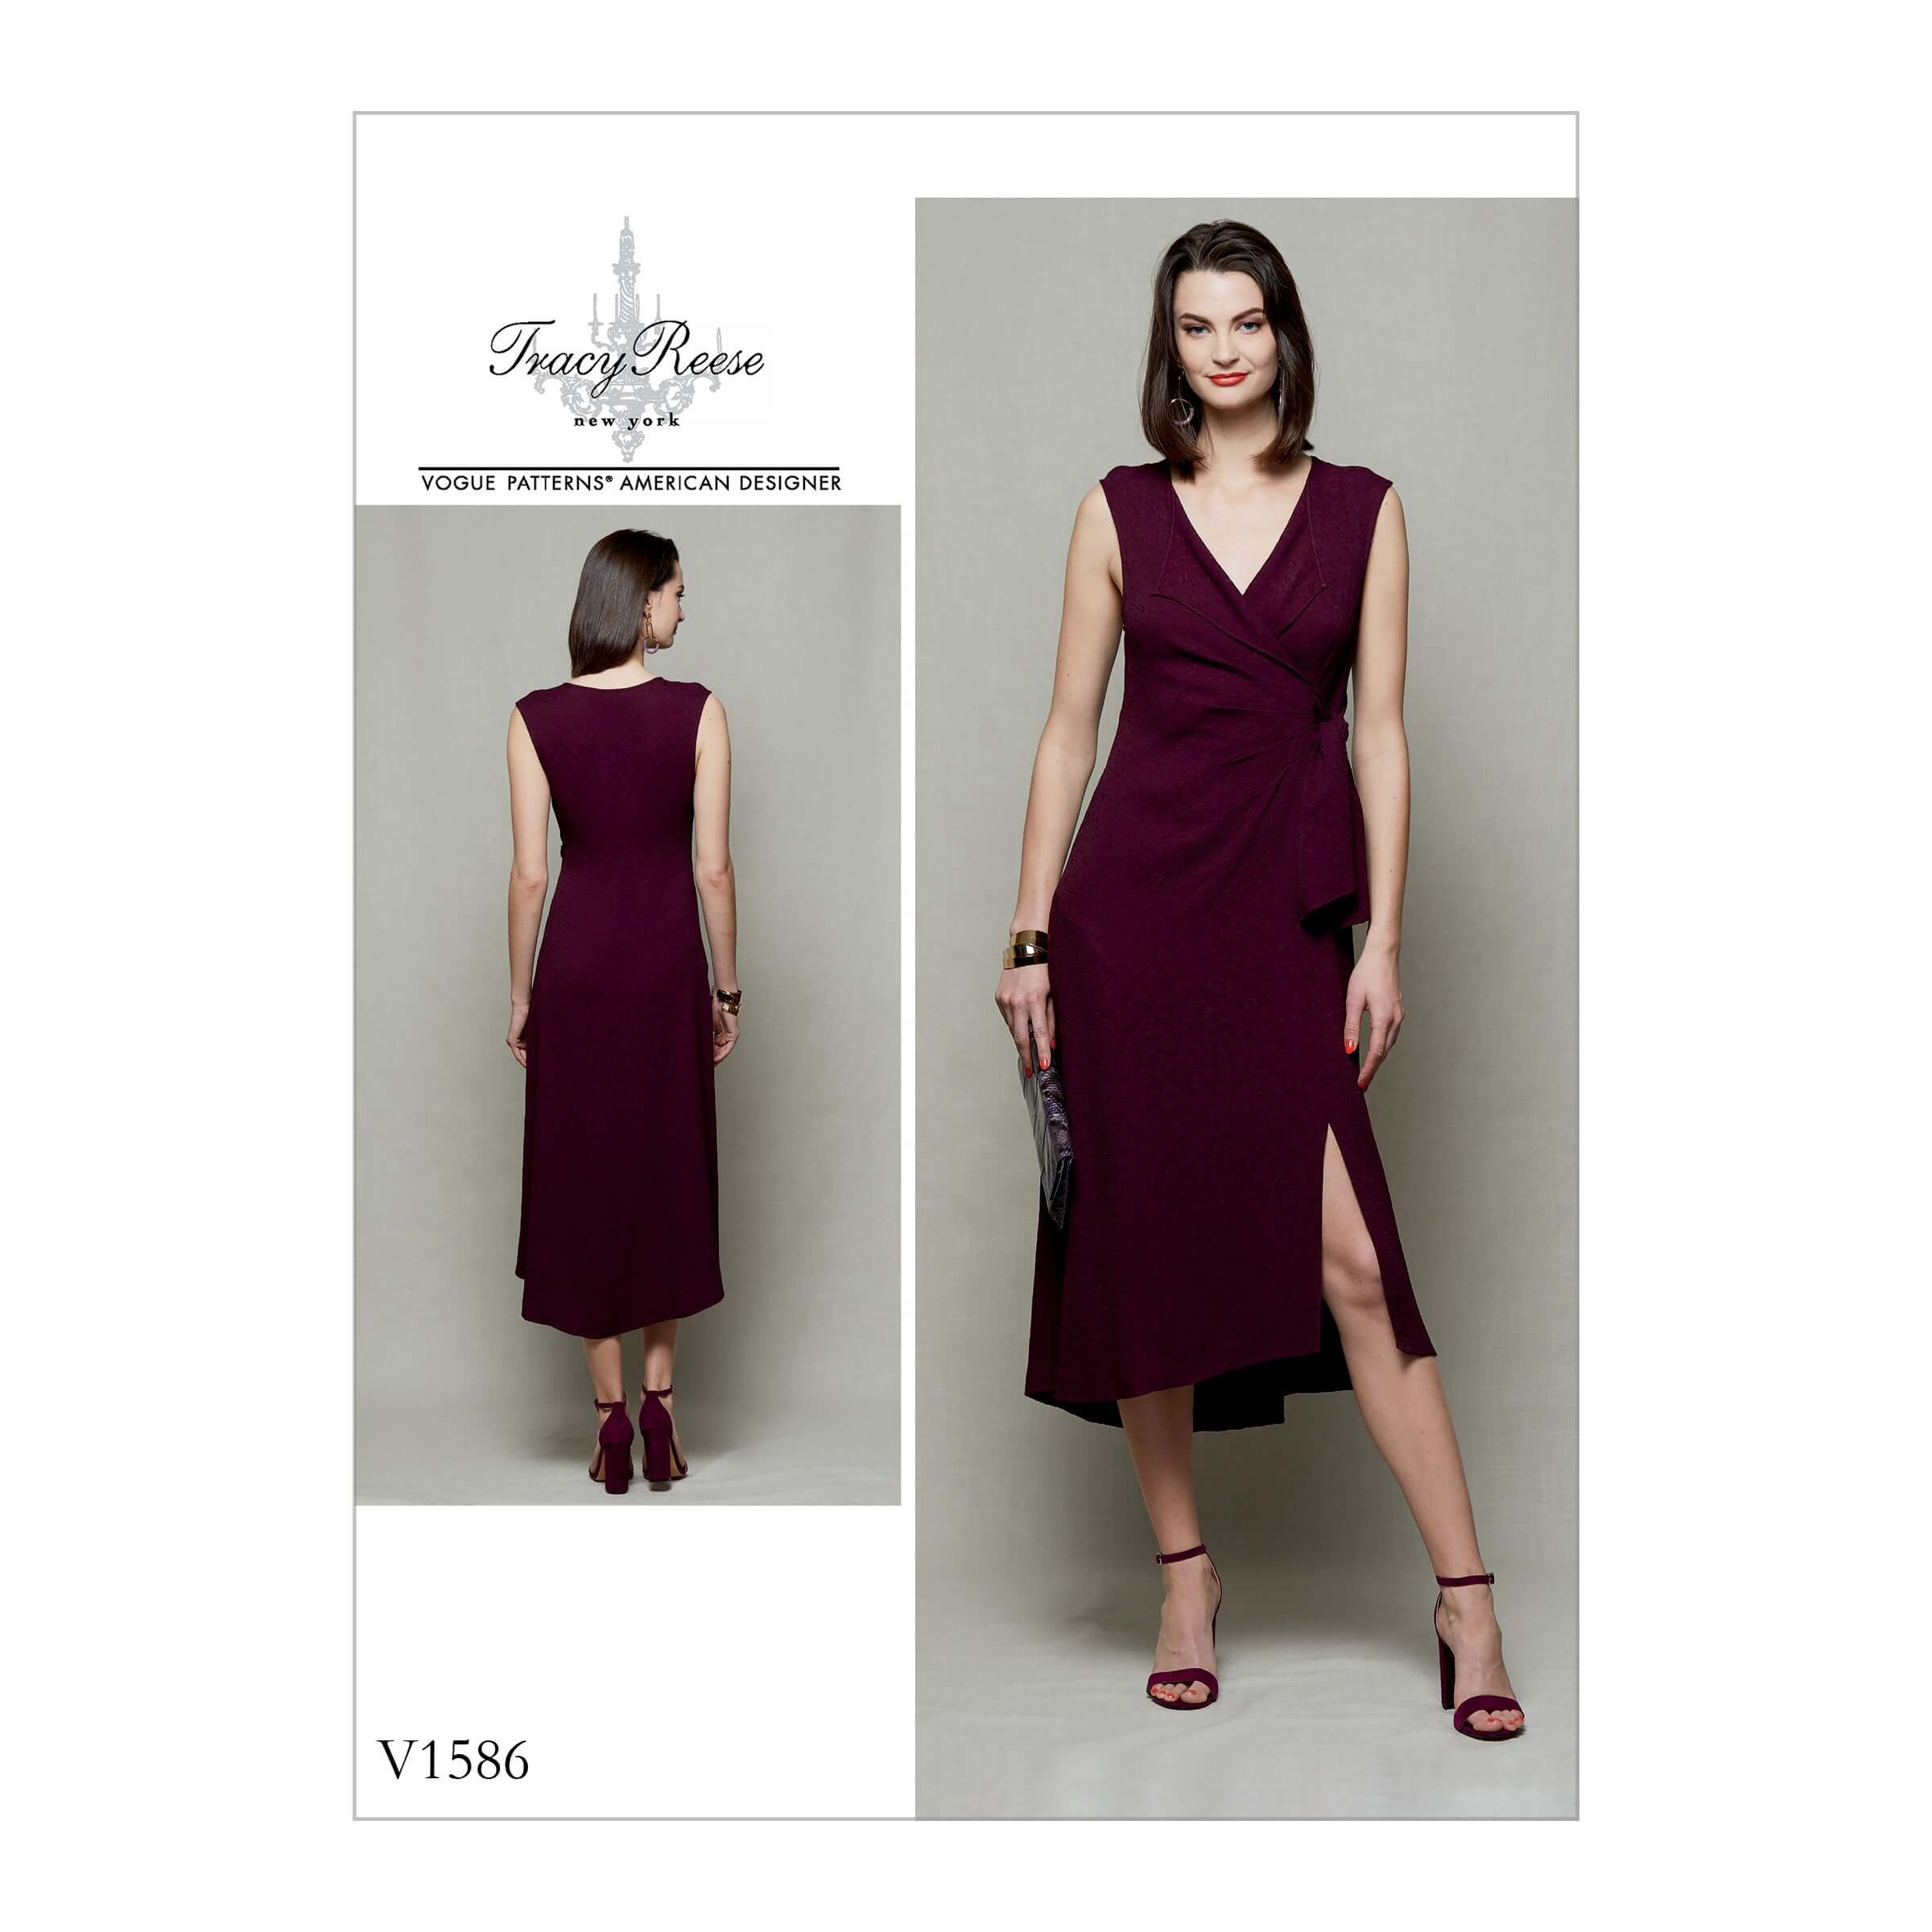 Vogue Sewing Pattern V1586 Women's Mock Wrap Dress with Wing Collar